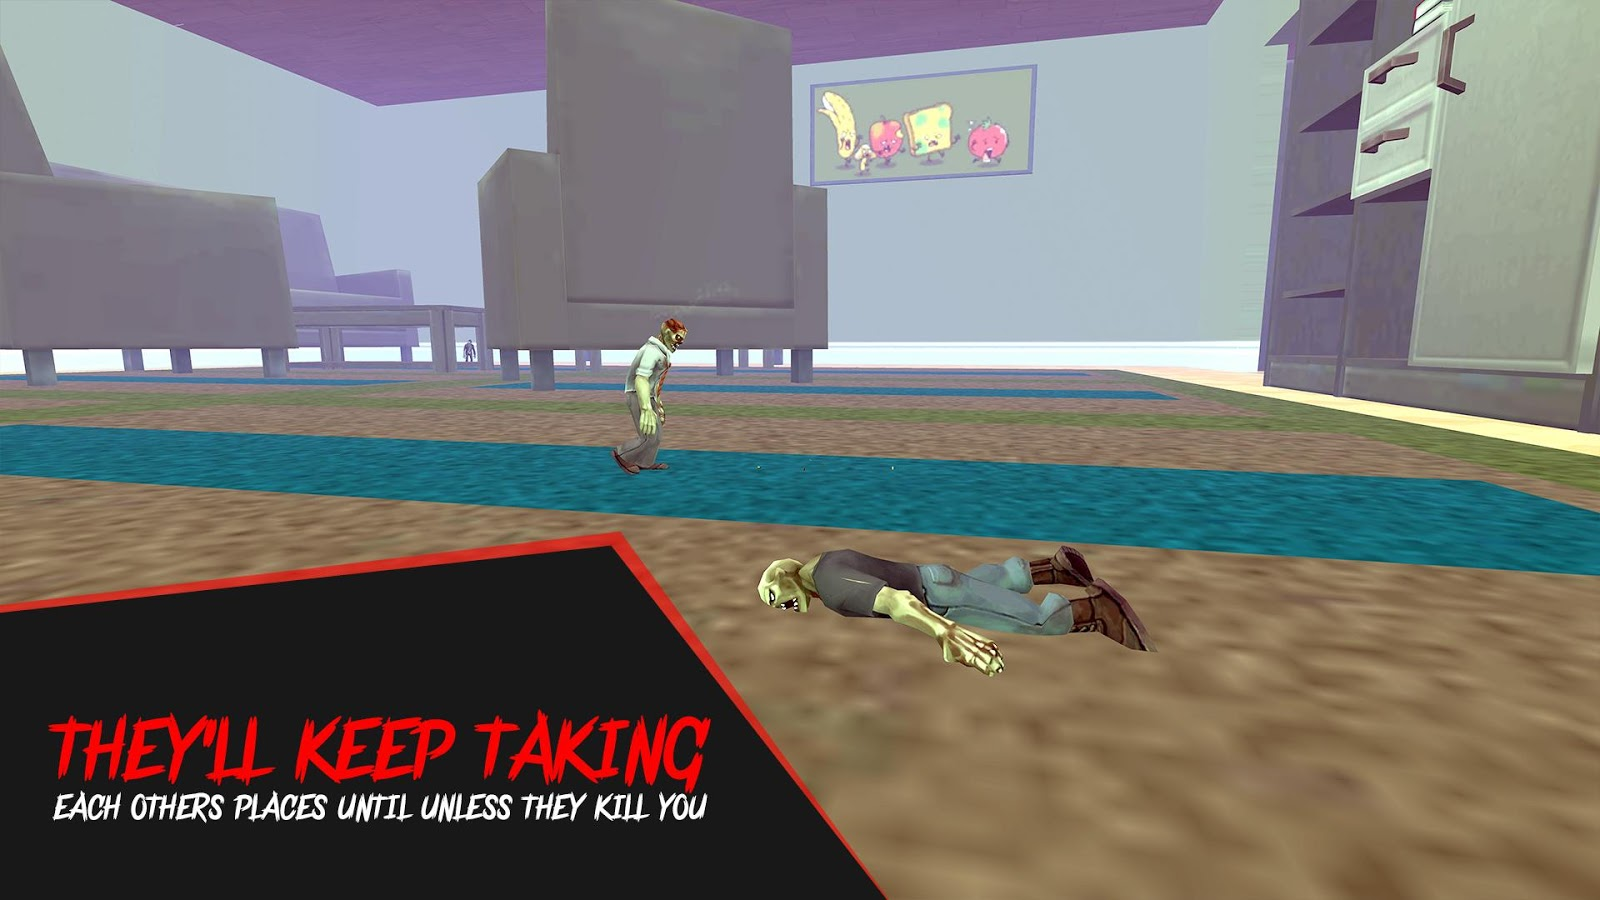 Funny Little Zombies - FPS Zombie Shooter Game- screenshot